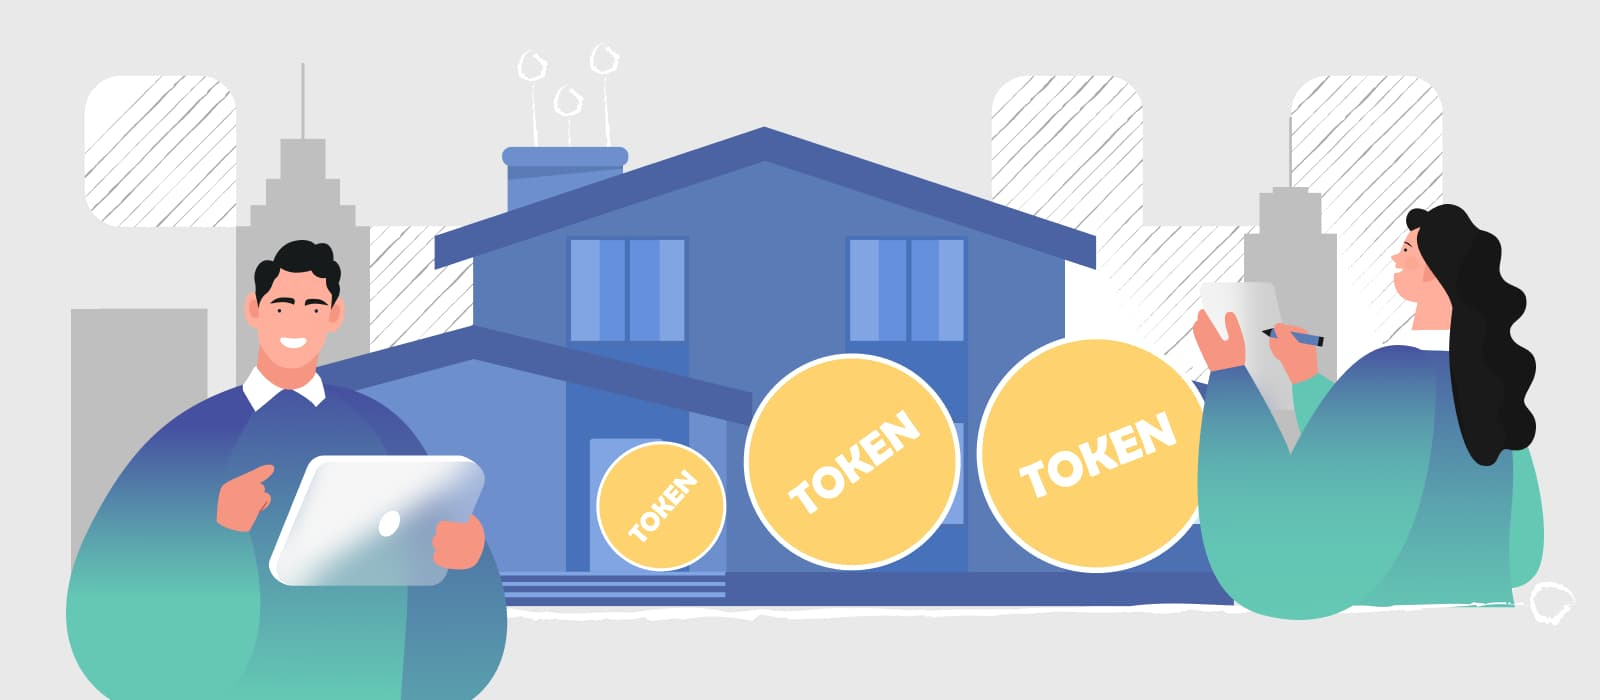 Real Estate Tokenization: What Is It and What Benefits Does It Offer?